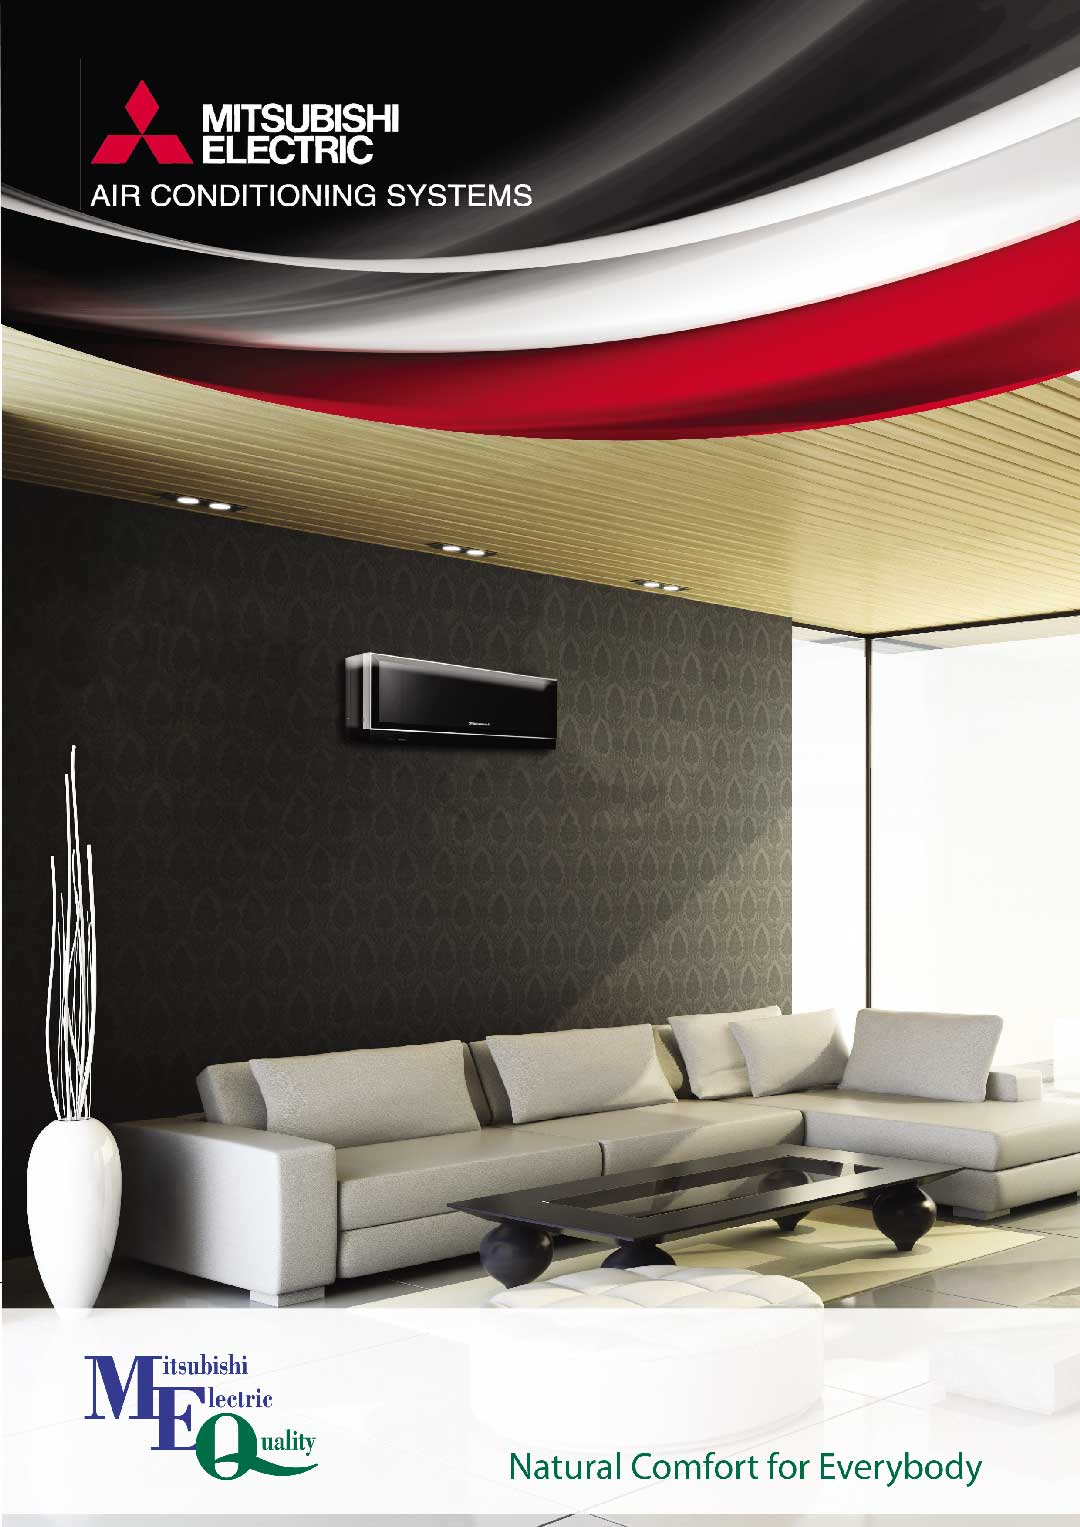 Mitsubishi-Air-Conditioning-Systems-1